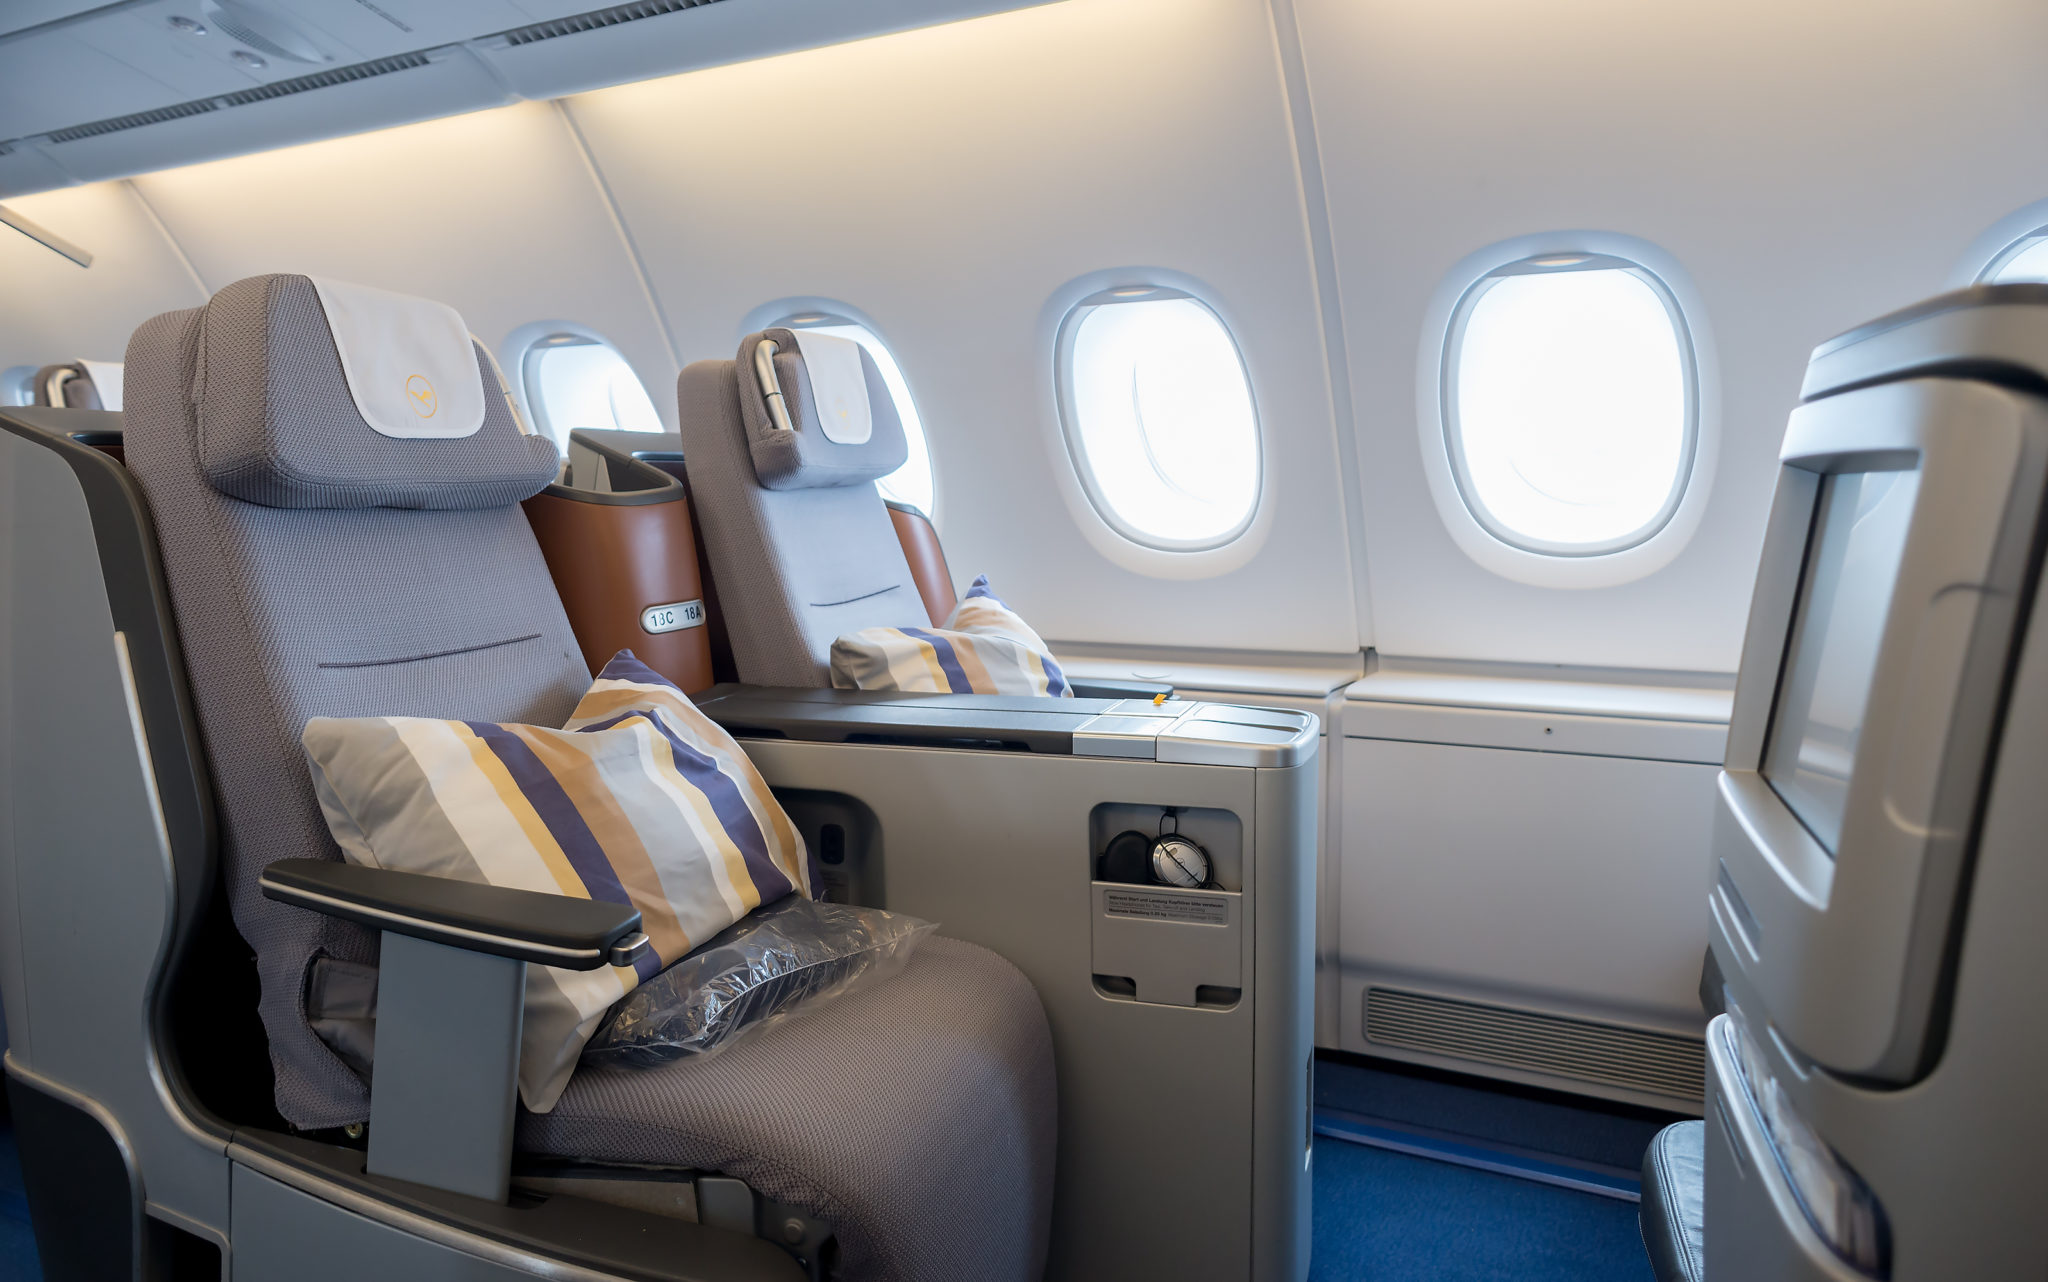 lufthansa business class seats pictures to pin on pinterest pinsdaddy. Black Bedroom Furniture Sets. Home Design Ideas